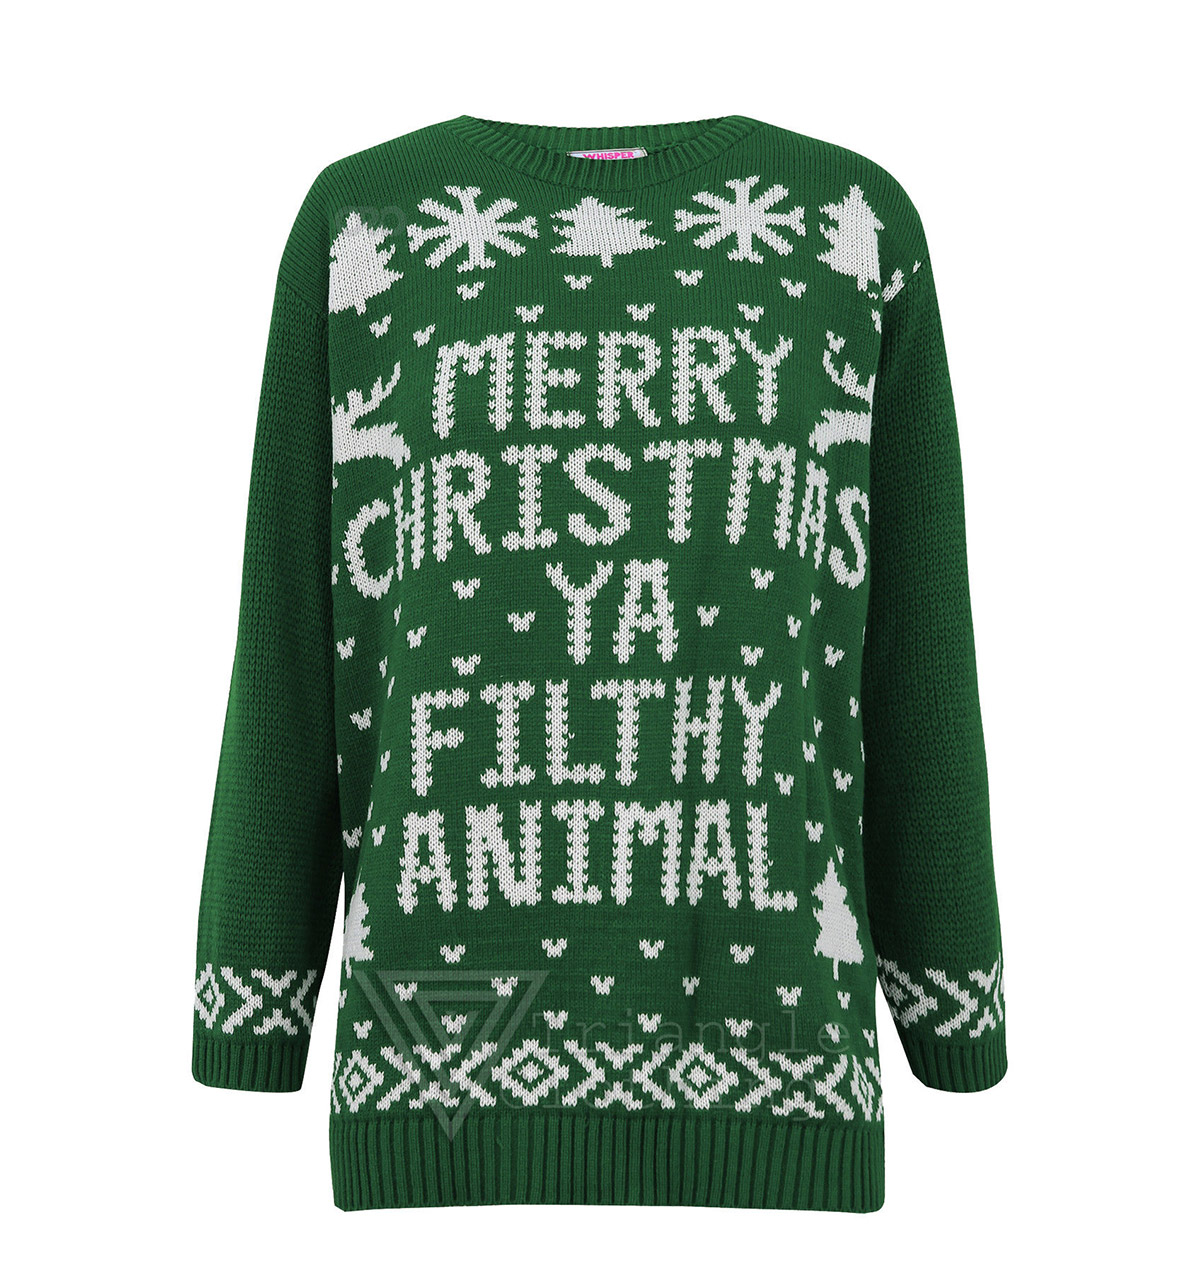 Merry Christmas Ya Filthy Animal Sweater Green Ugly Christmas